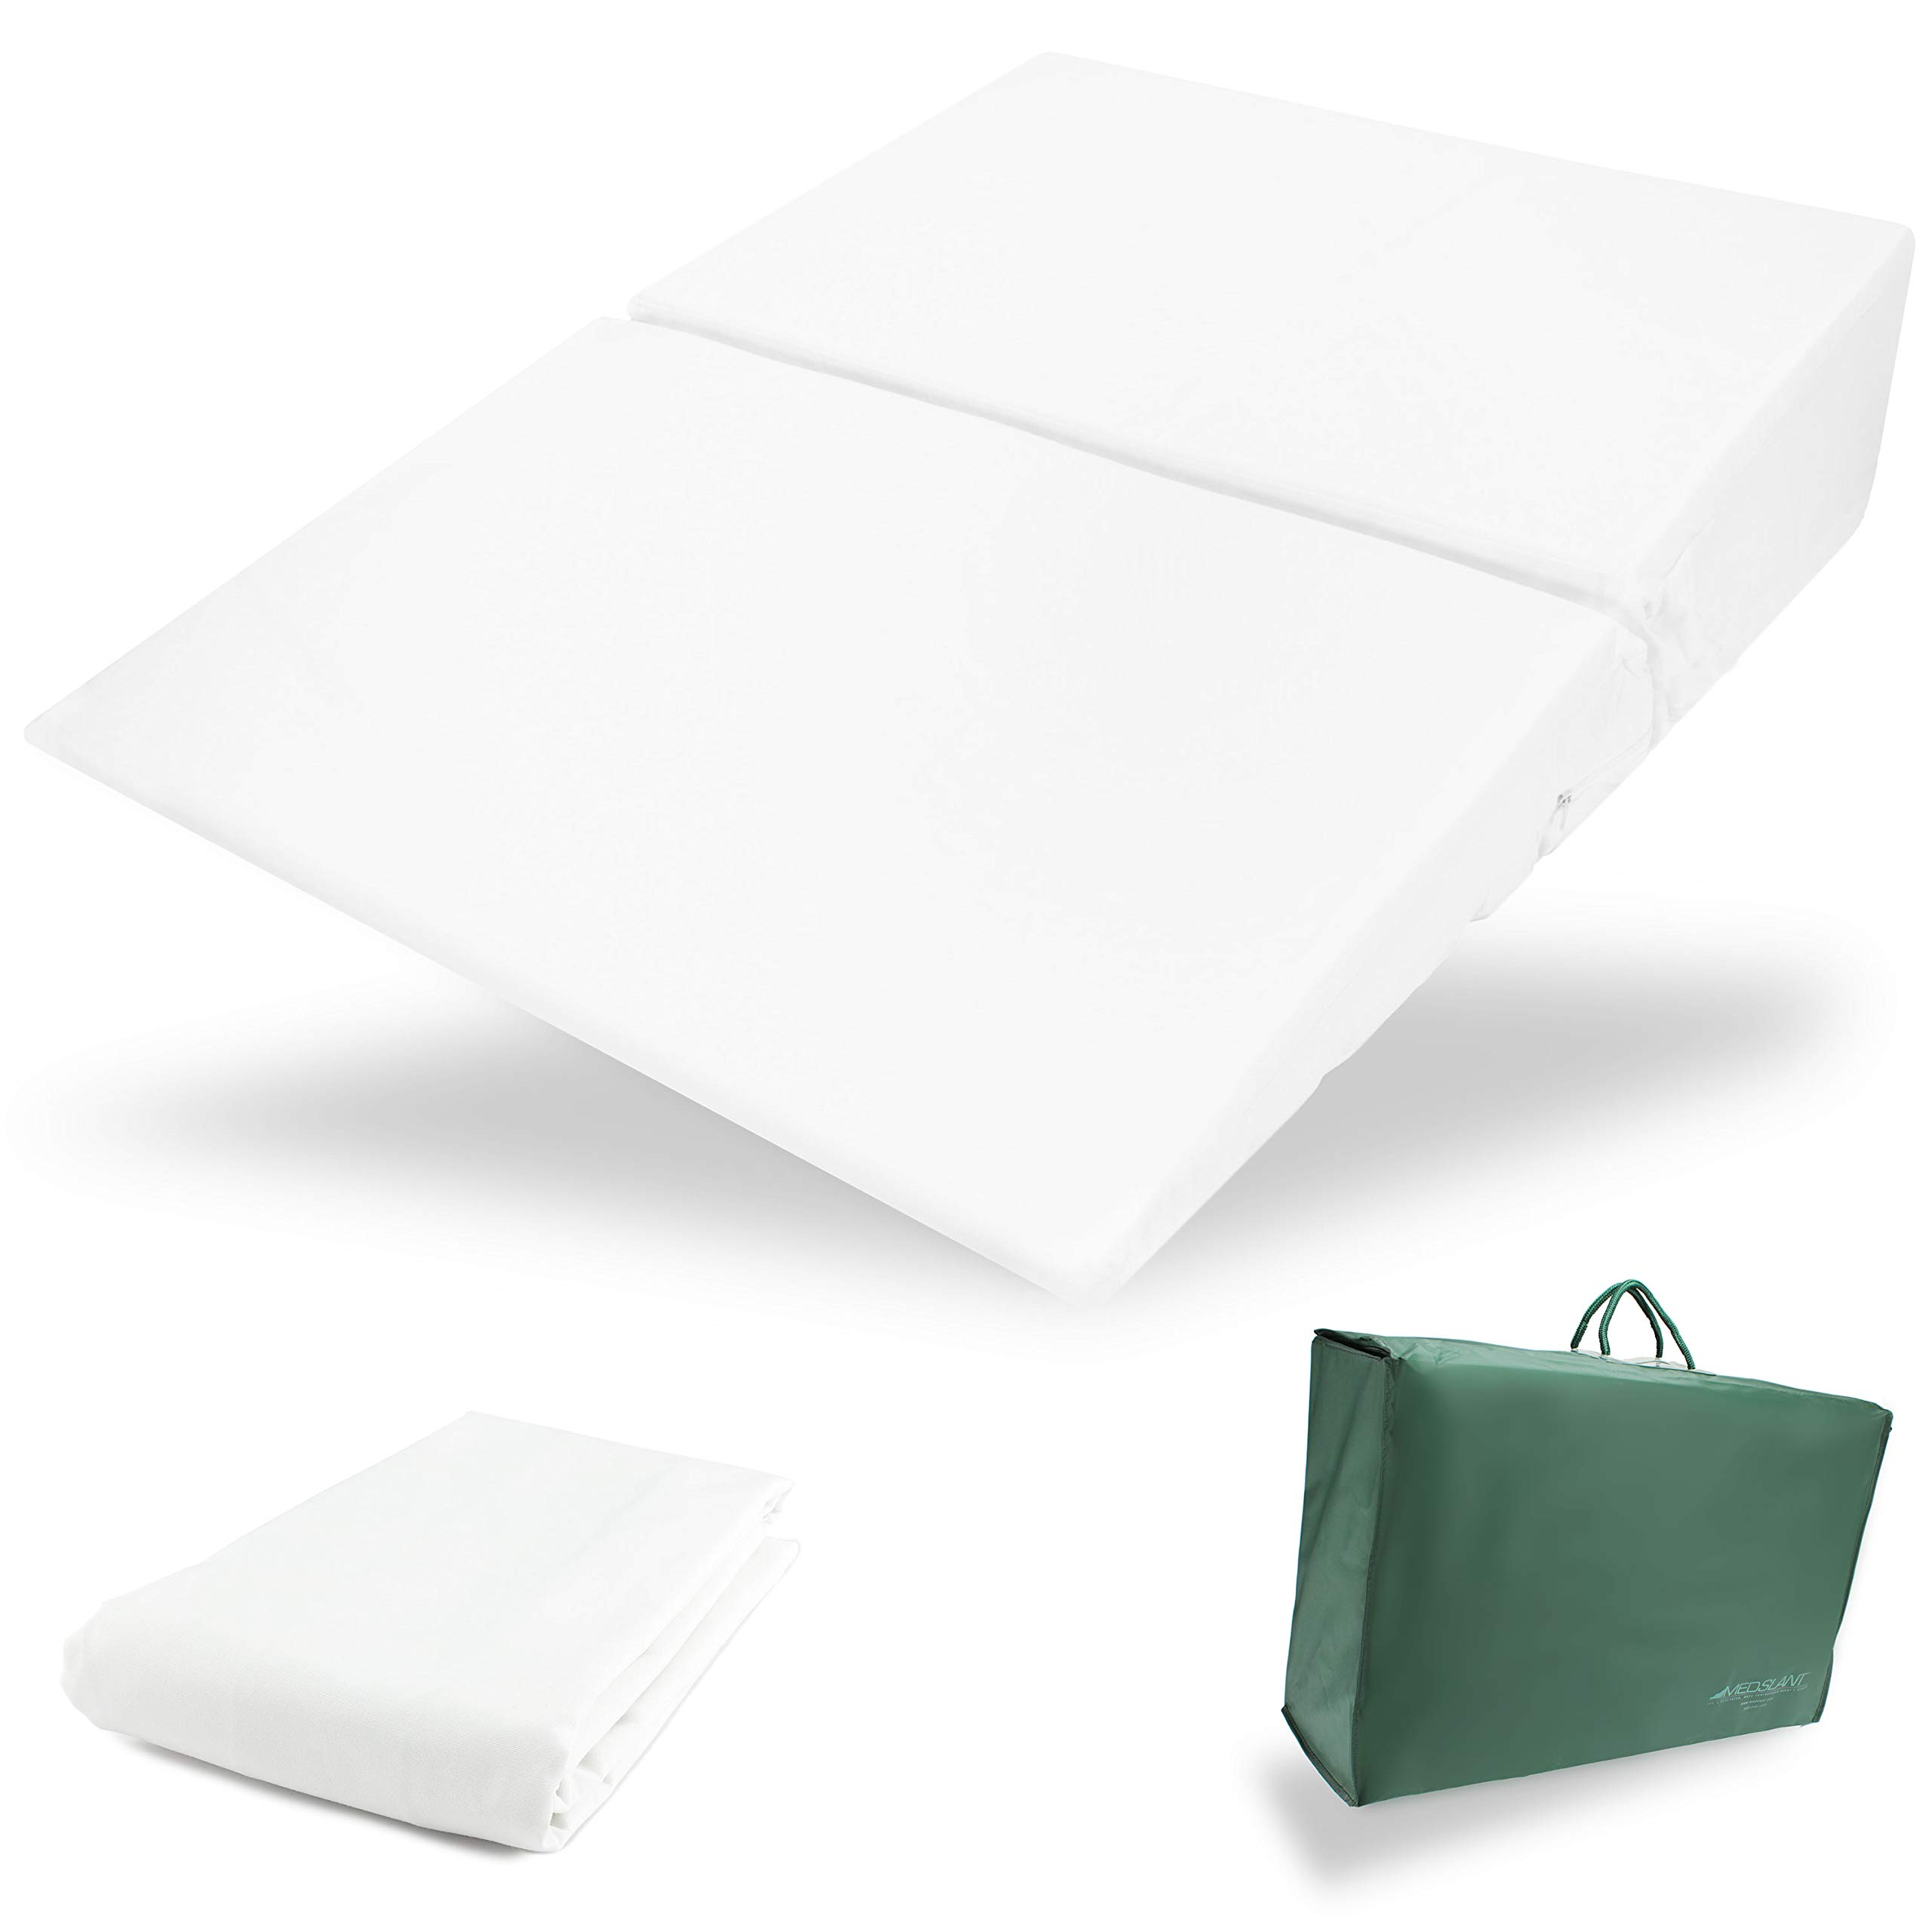 Wedge Pillow for Acid Reflux (32''x24''x7'') with Allergen Cover - Folding Pillow includes a Fitted Allergen Barrier Cover, Zippered Poly-Cotton Folding Cover and Quality Carry Case. Recommended by Dr. Mike Roizen as a Reflux and Snoring Solution